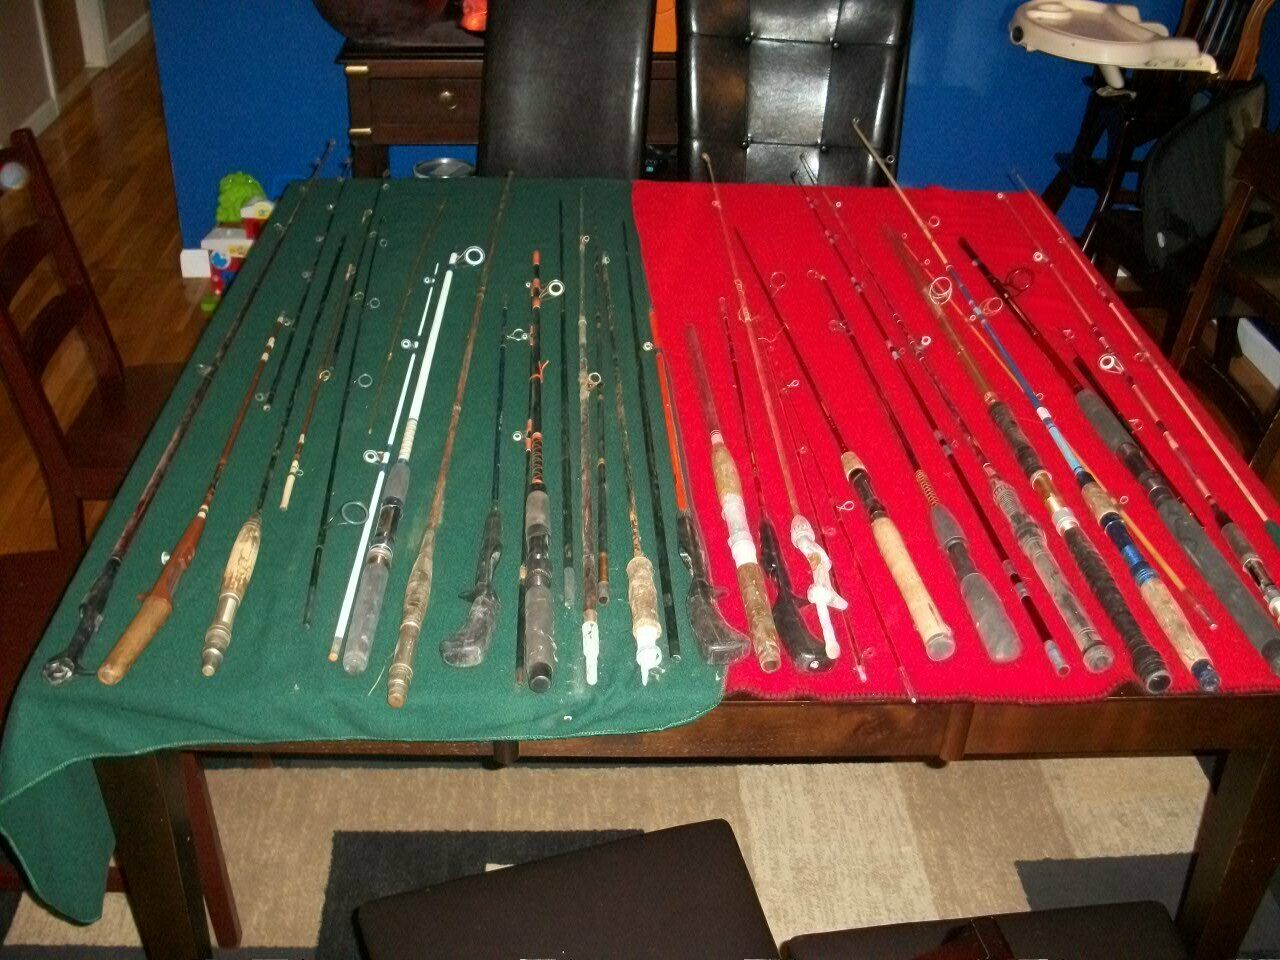 Casting Spinning Fly Fishing Rod Parts  Huge Lot  novelty items